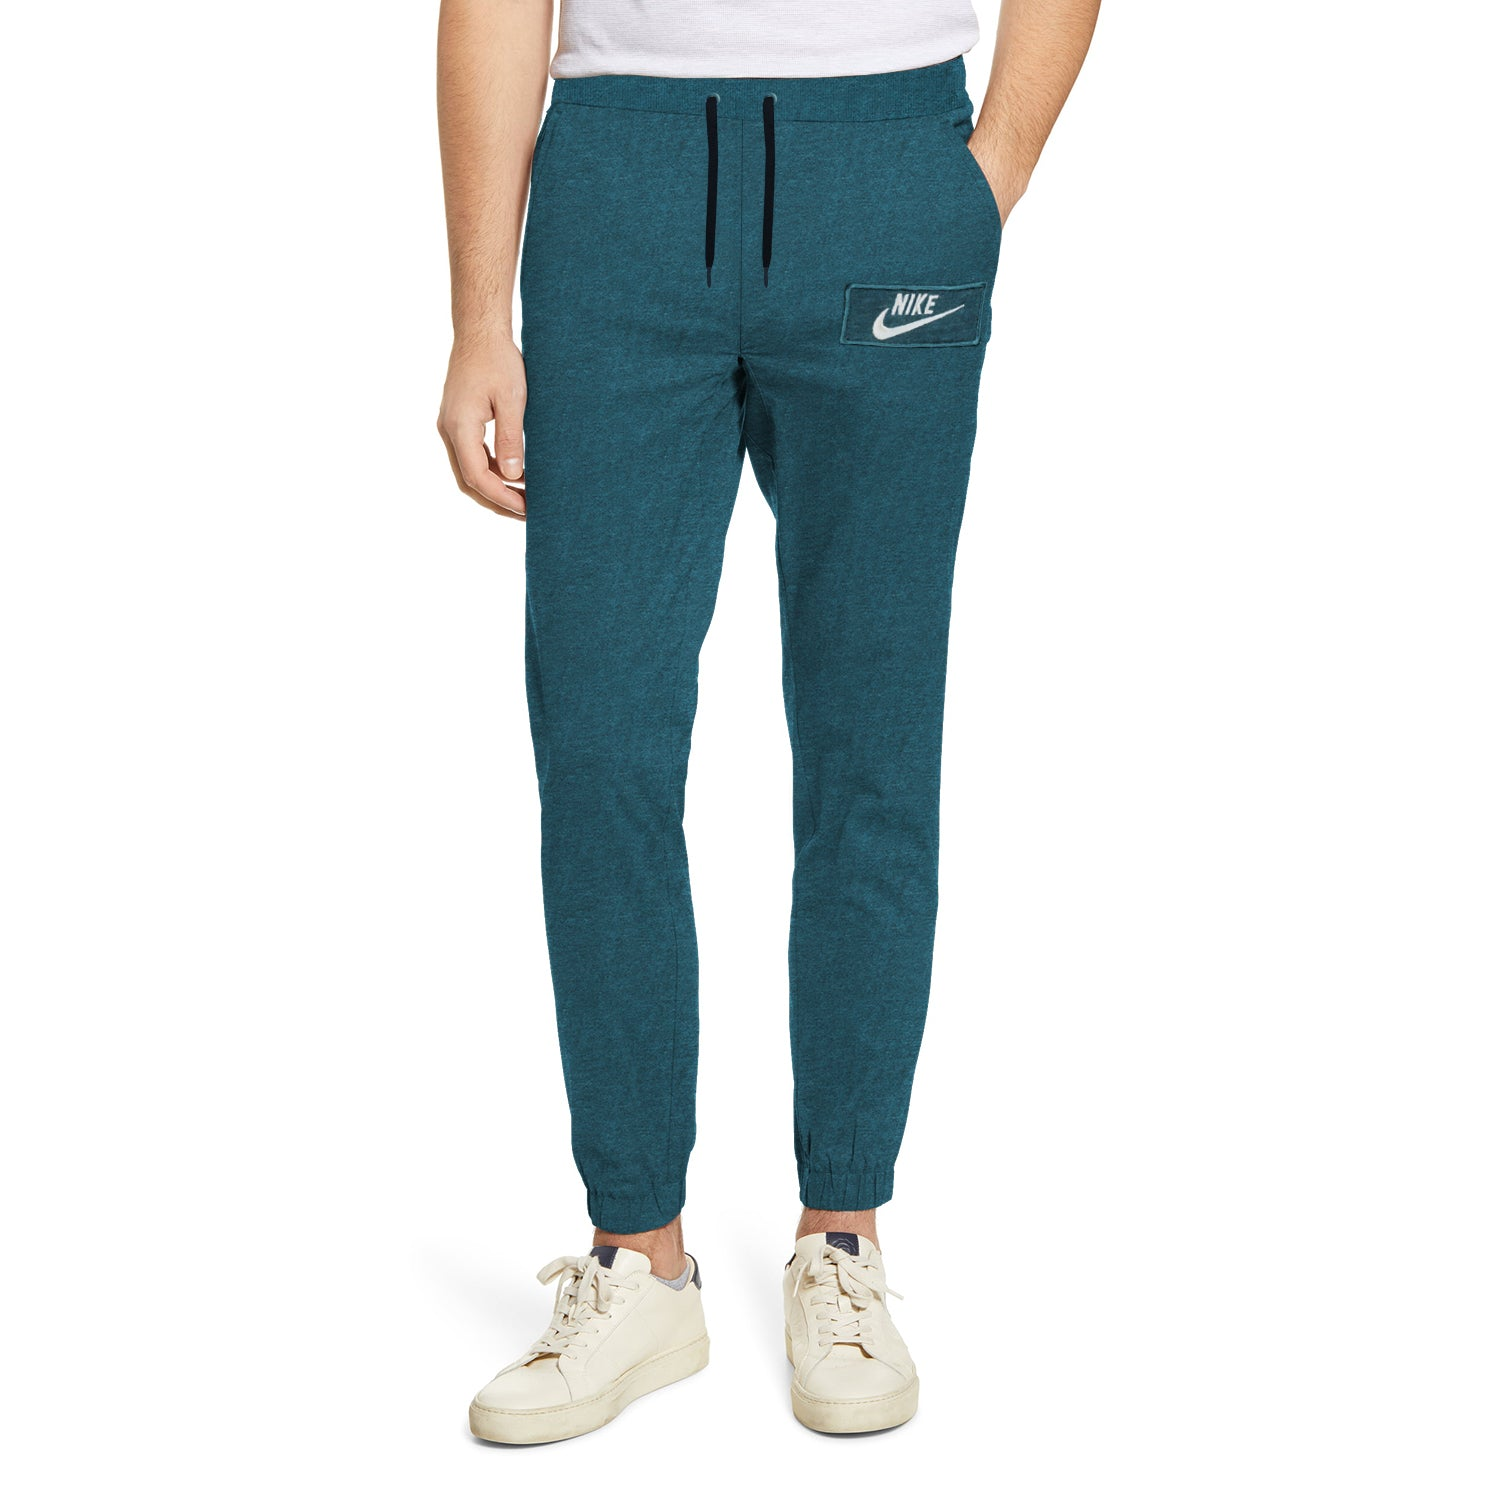 NK Fleece Gathering Fit Pant Style Jogging Trouser For Boys-Prussian Blue Melange with White Embroidery-BE12942